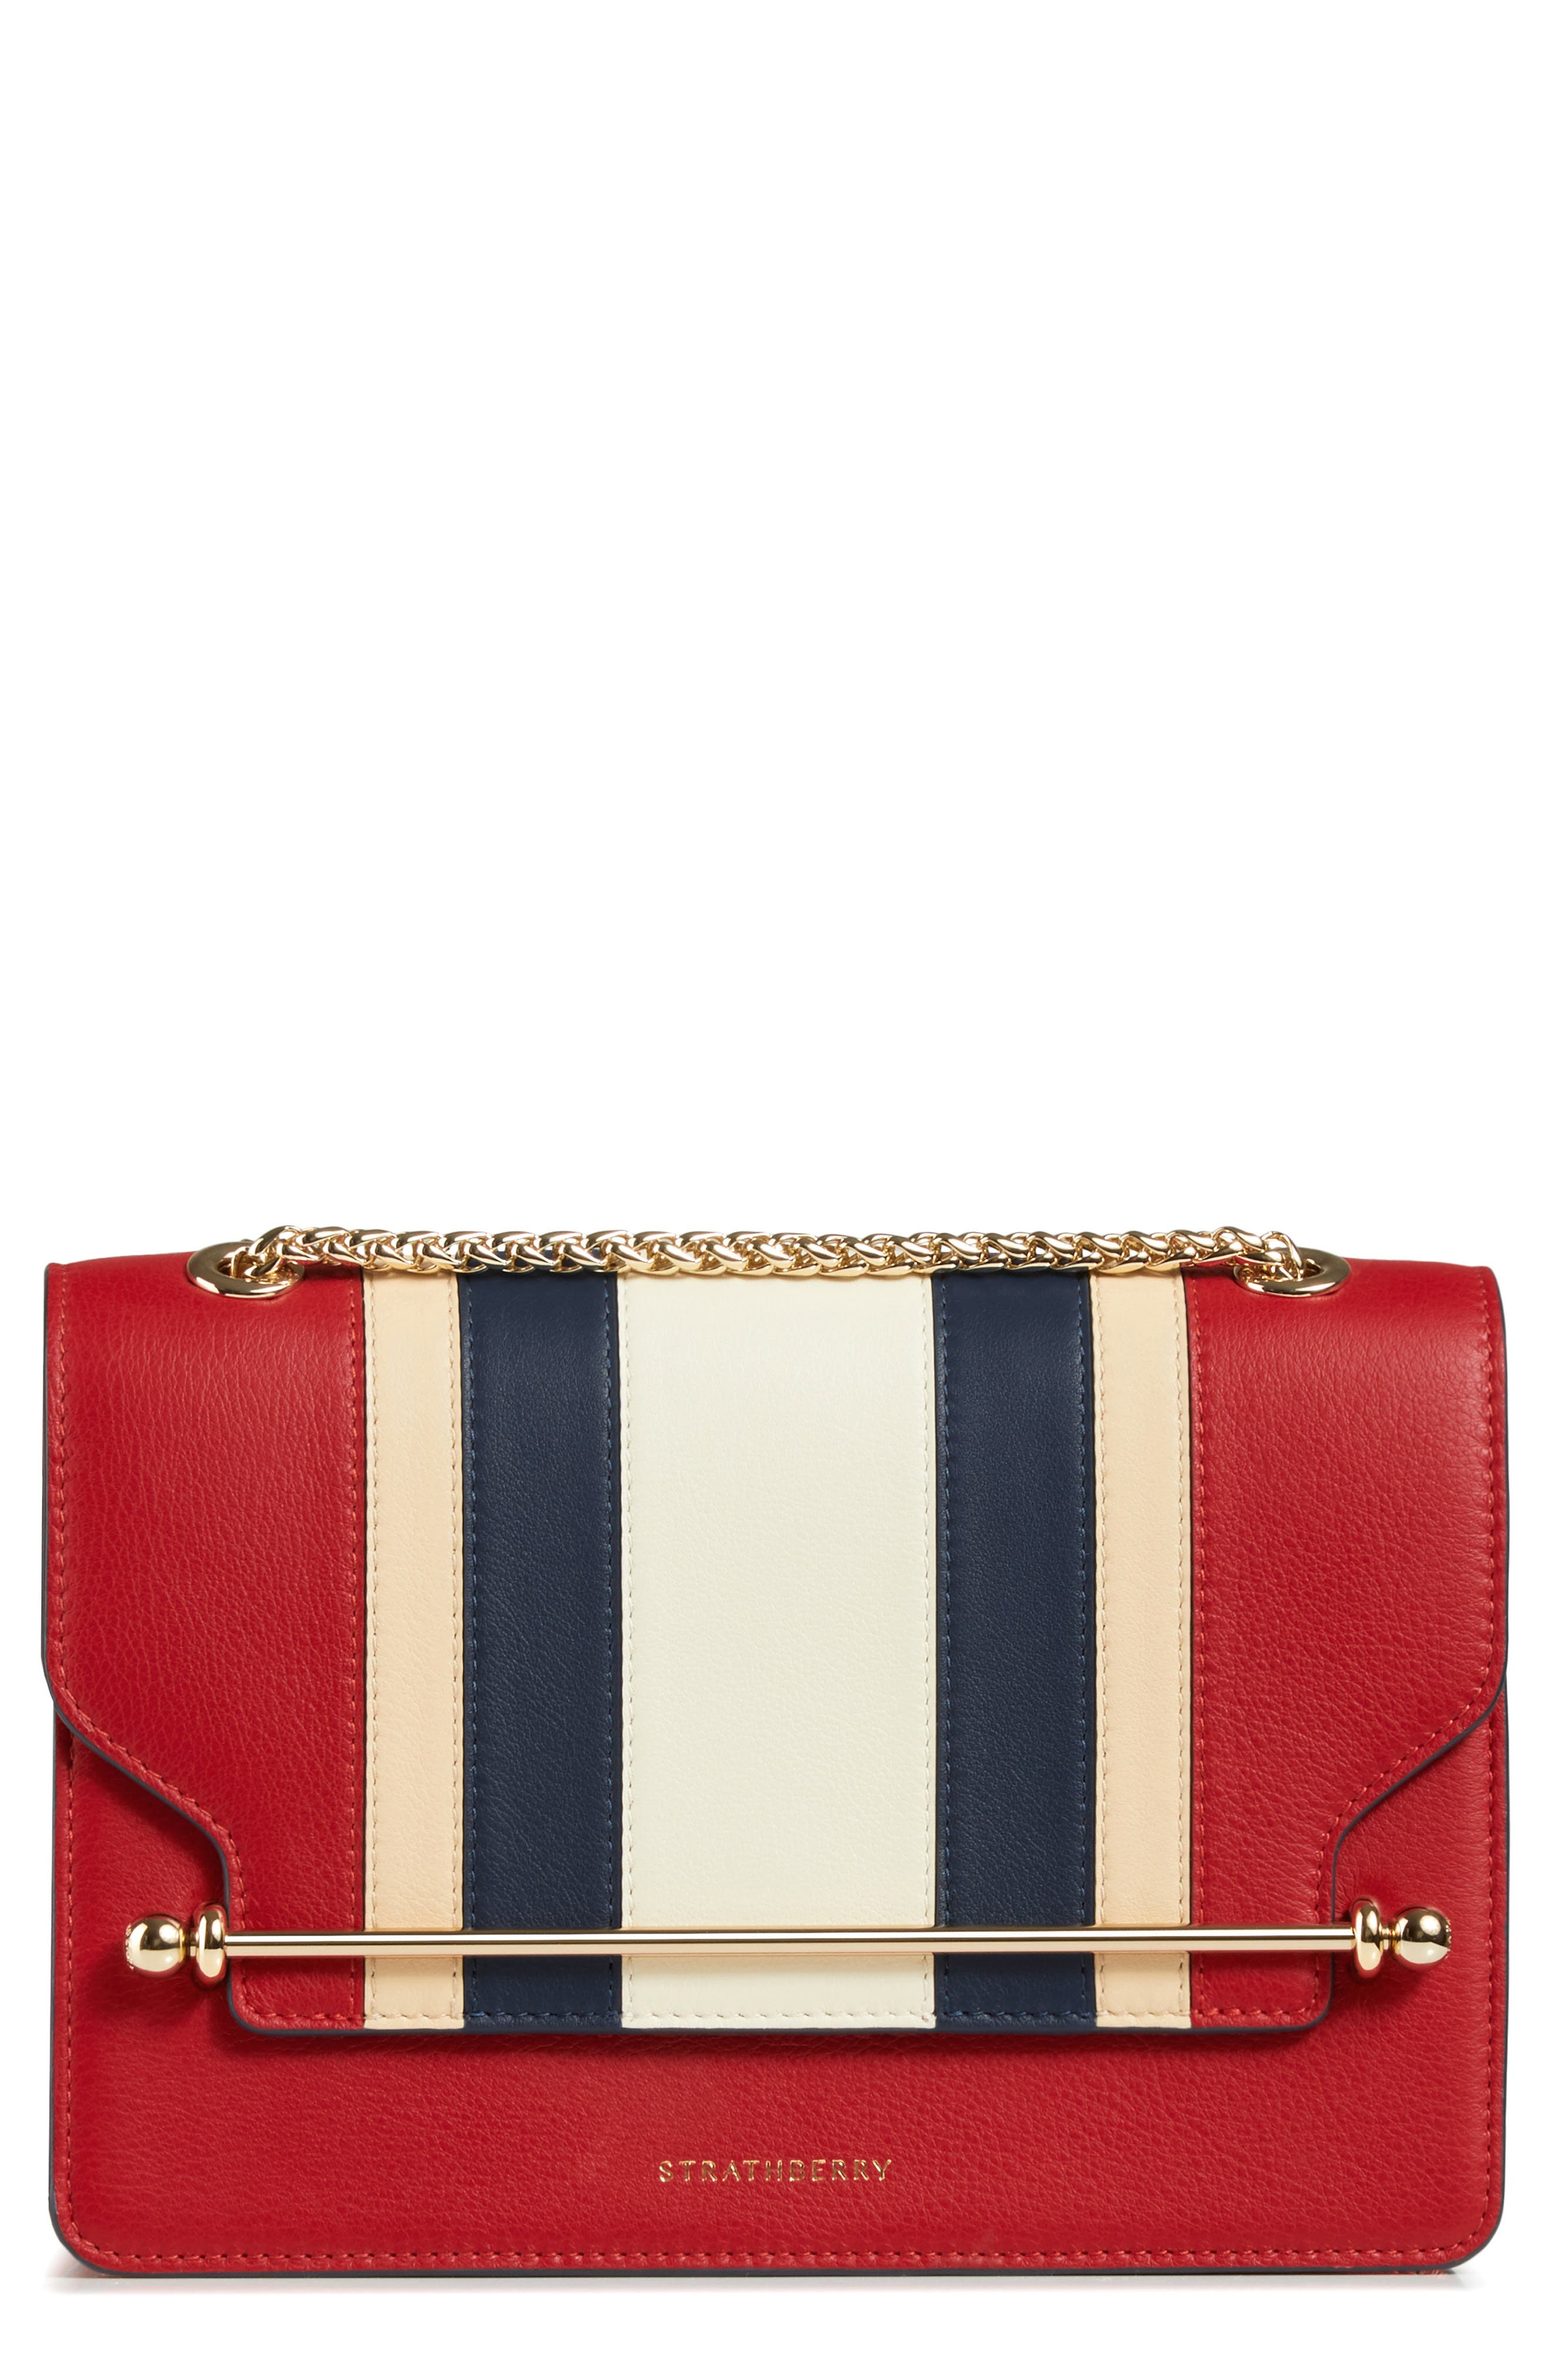 East/West Stripe Leather Crossbody Bag,                             Main thumbnail 1, color,                             600